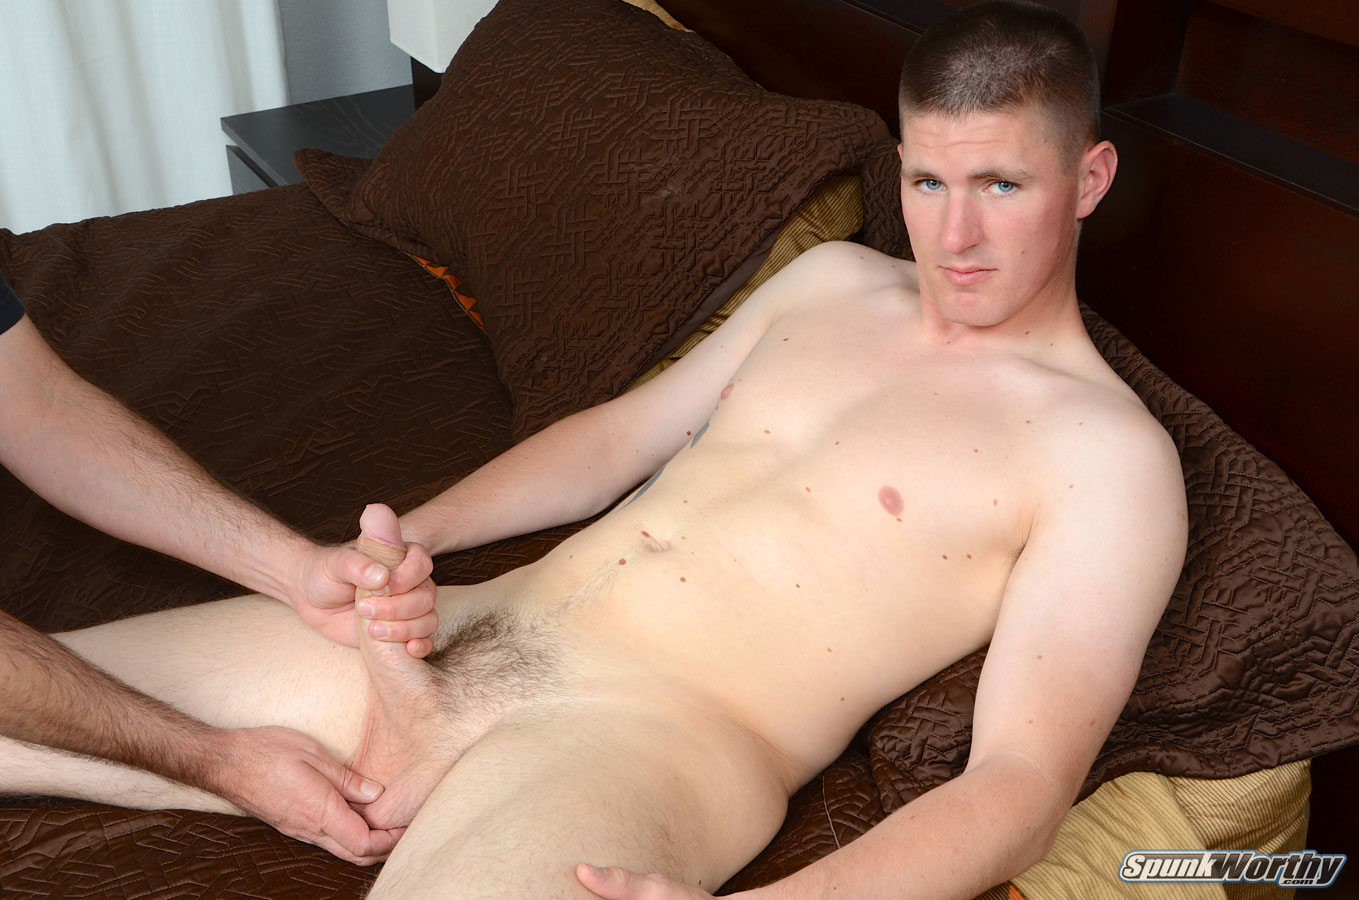 SpunkWorthy-Eli-Straight-Marine-Gets-A-Hand-Job-Fleshlight-from-A-guy-Amateur-Gay-Porn-06 Straight Marine Gets His First Hand Job From Another Guy